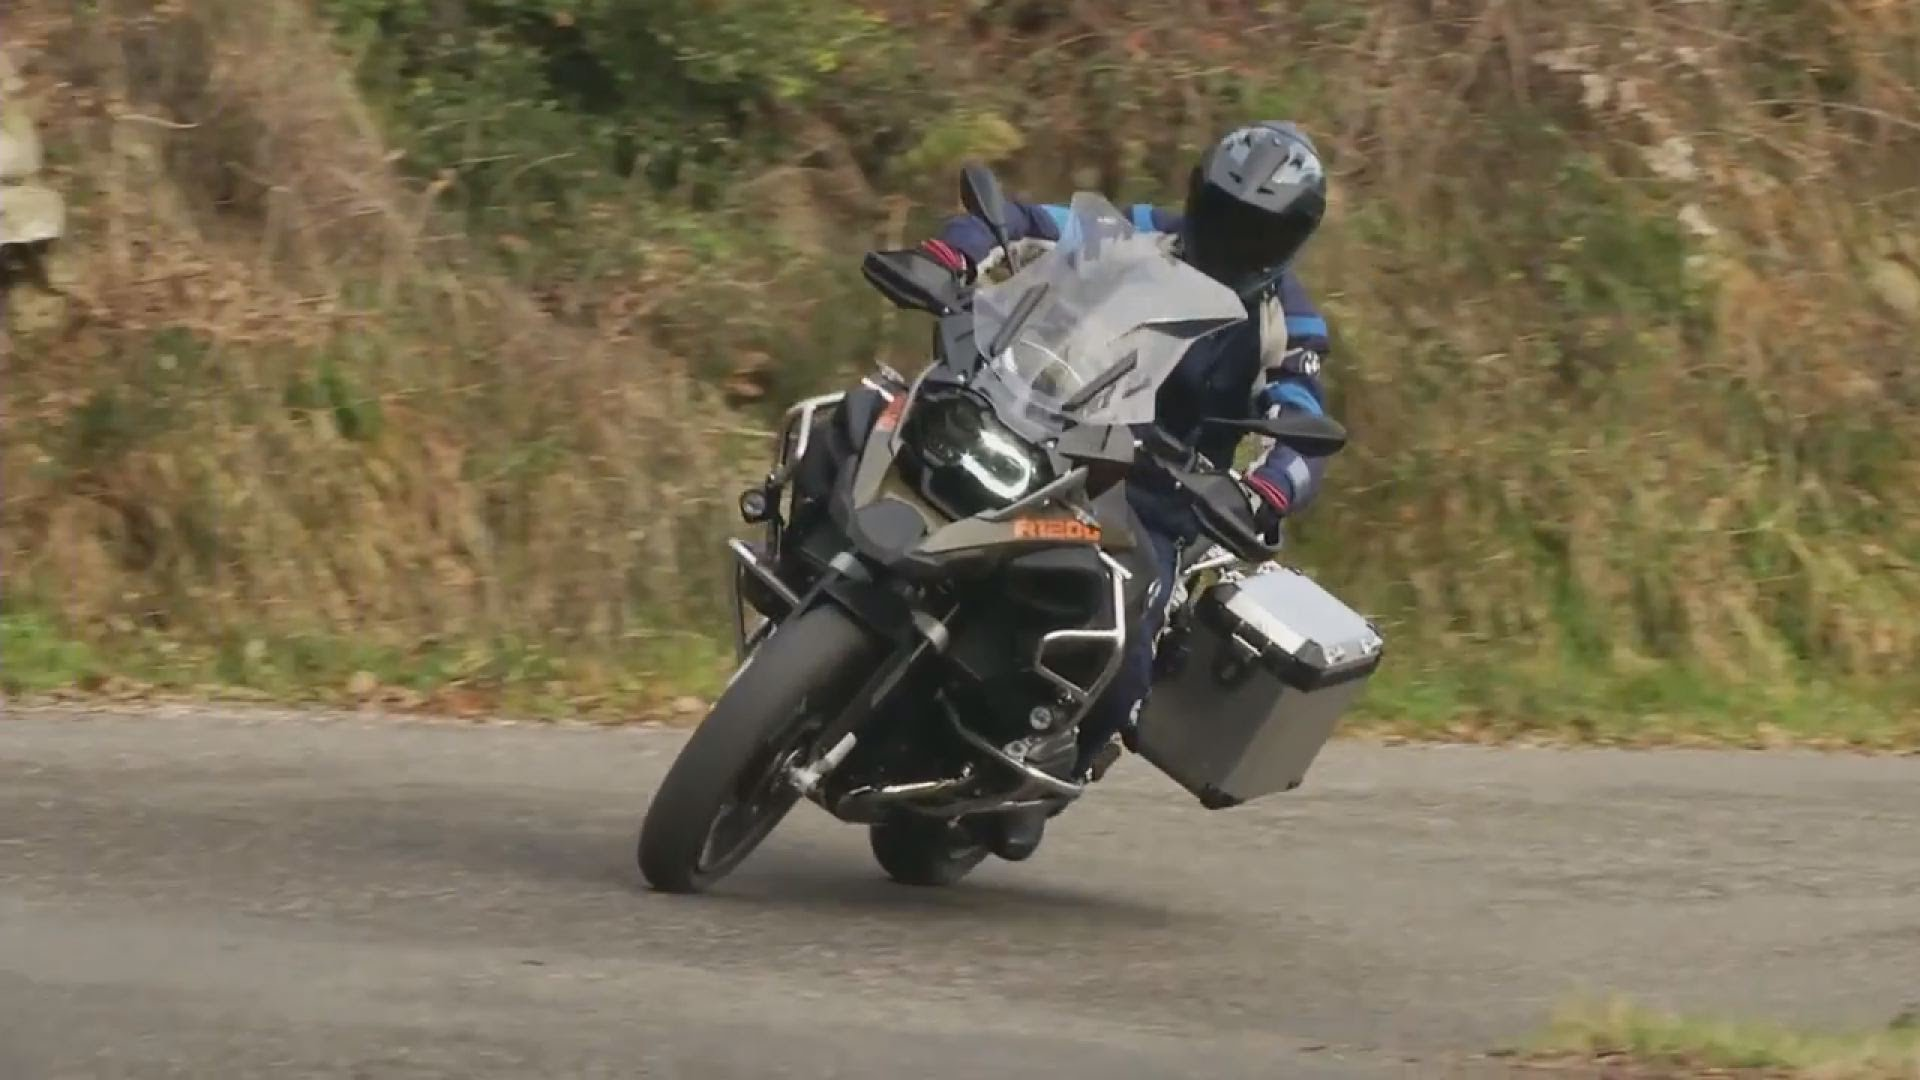 BMW R1200GS Adventure 2015 images #78358